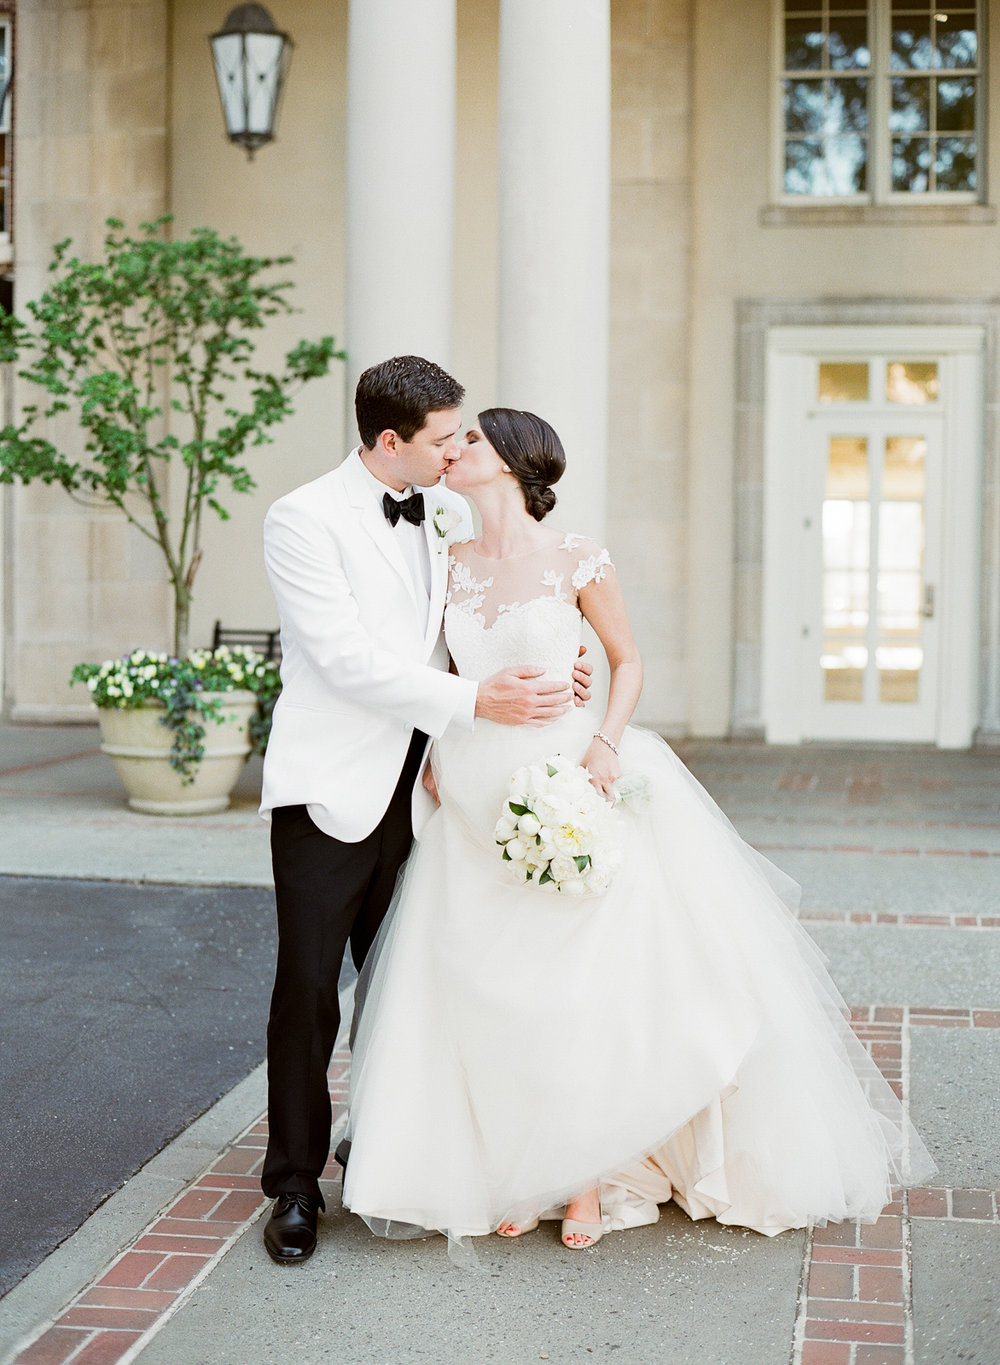 SouthernWeddings_SawyerBaird (77 of 388).JPG